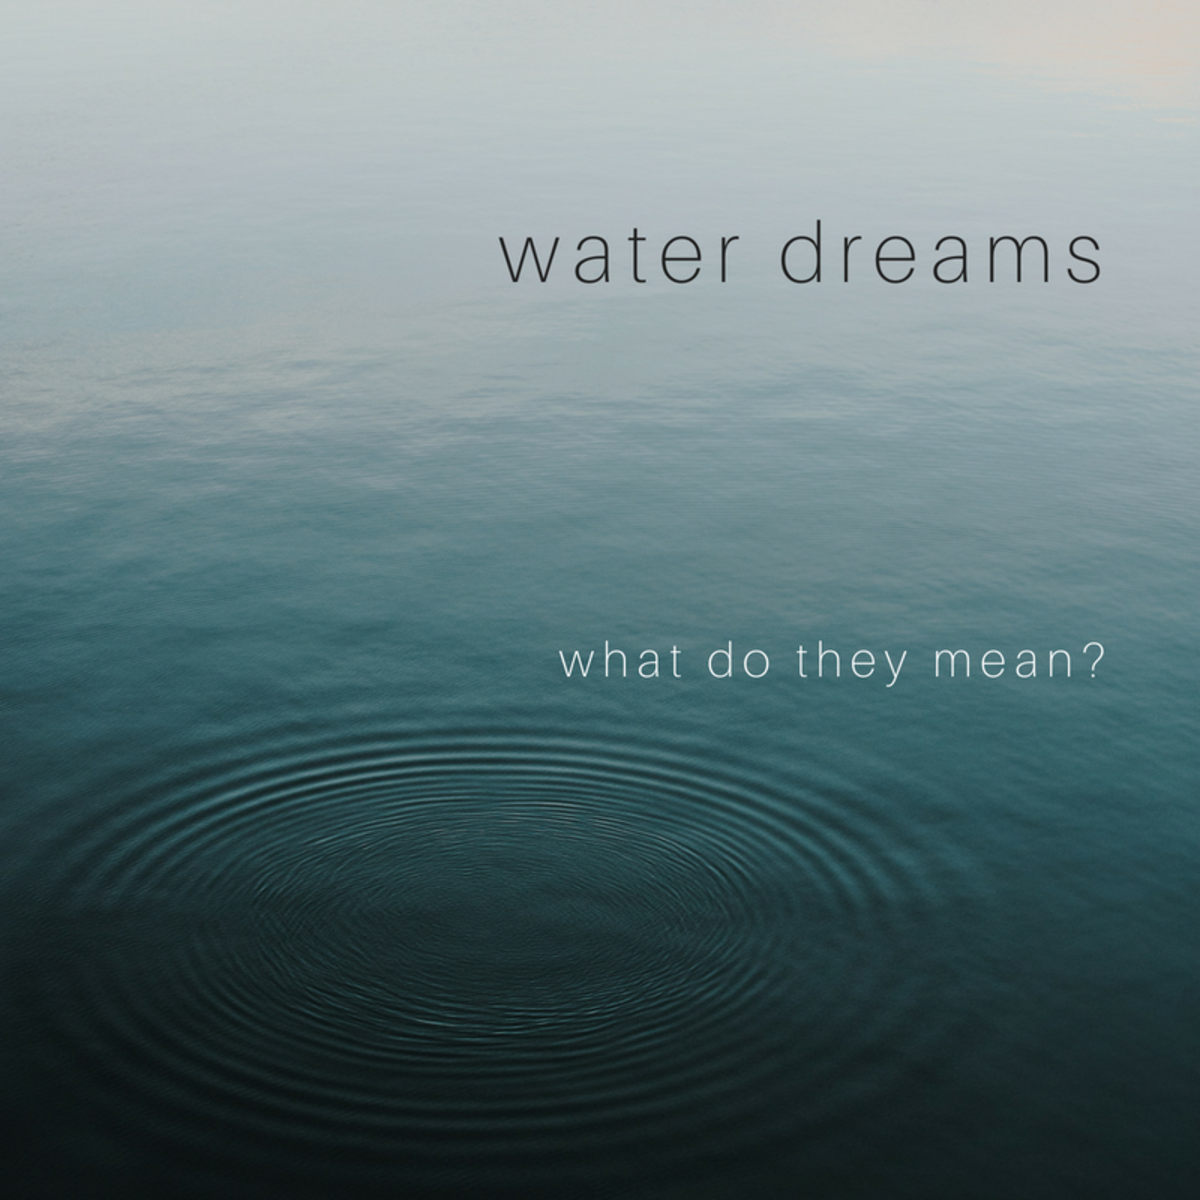 An encyclopedic list of water dream interpretations.